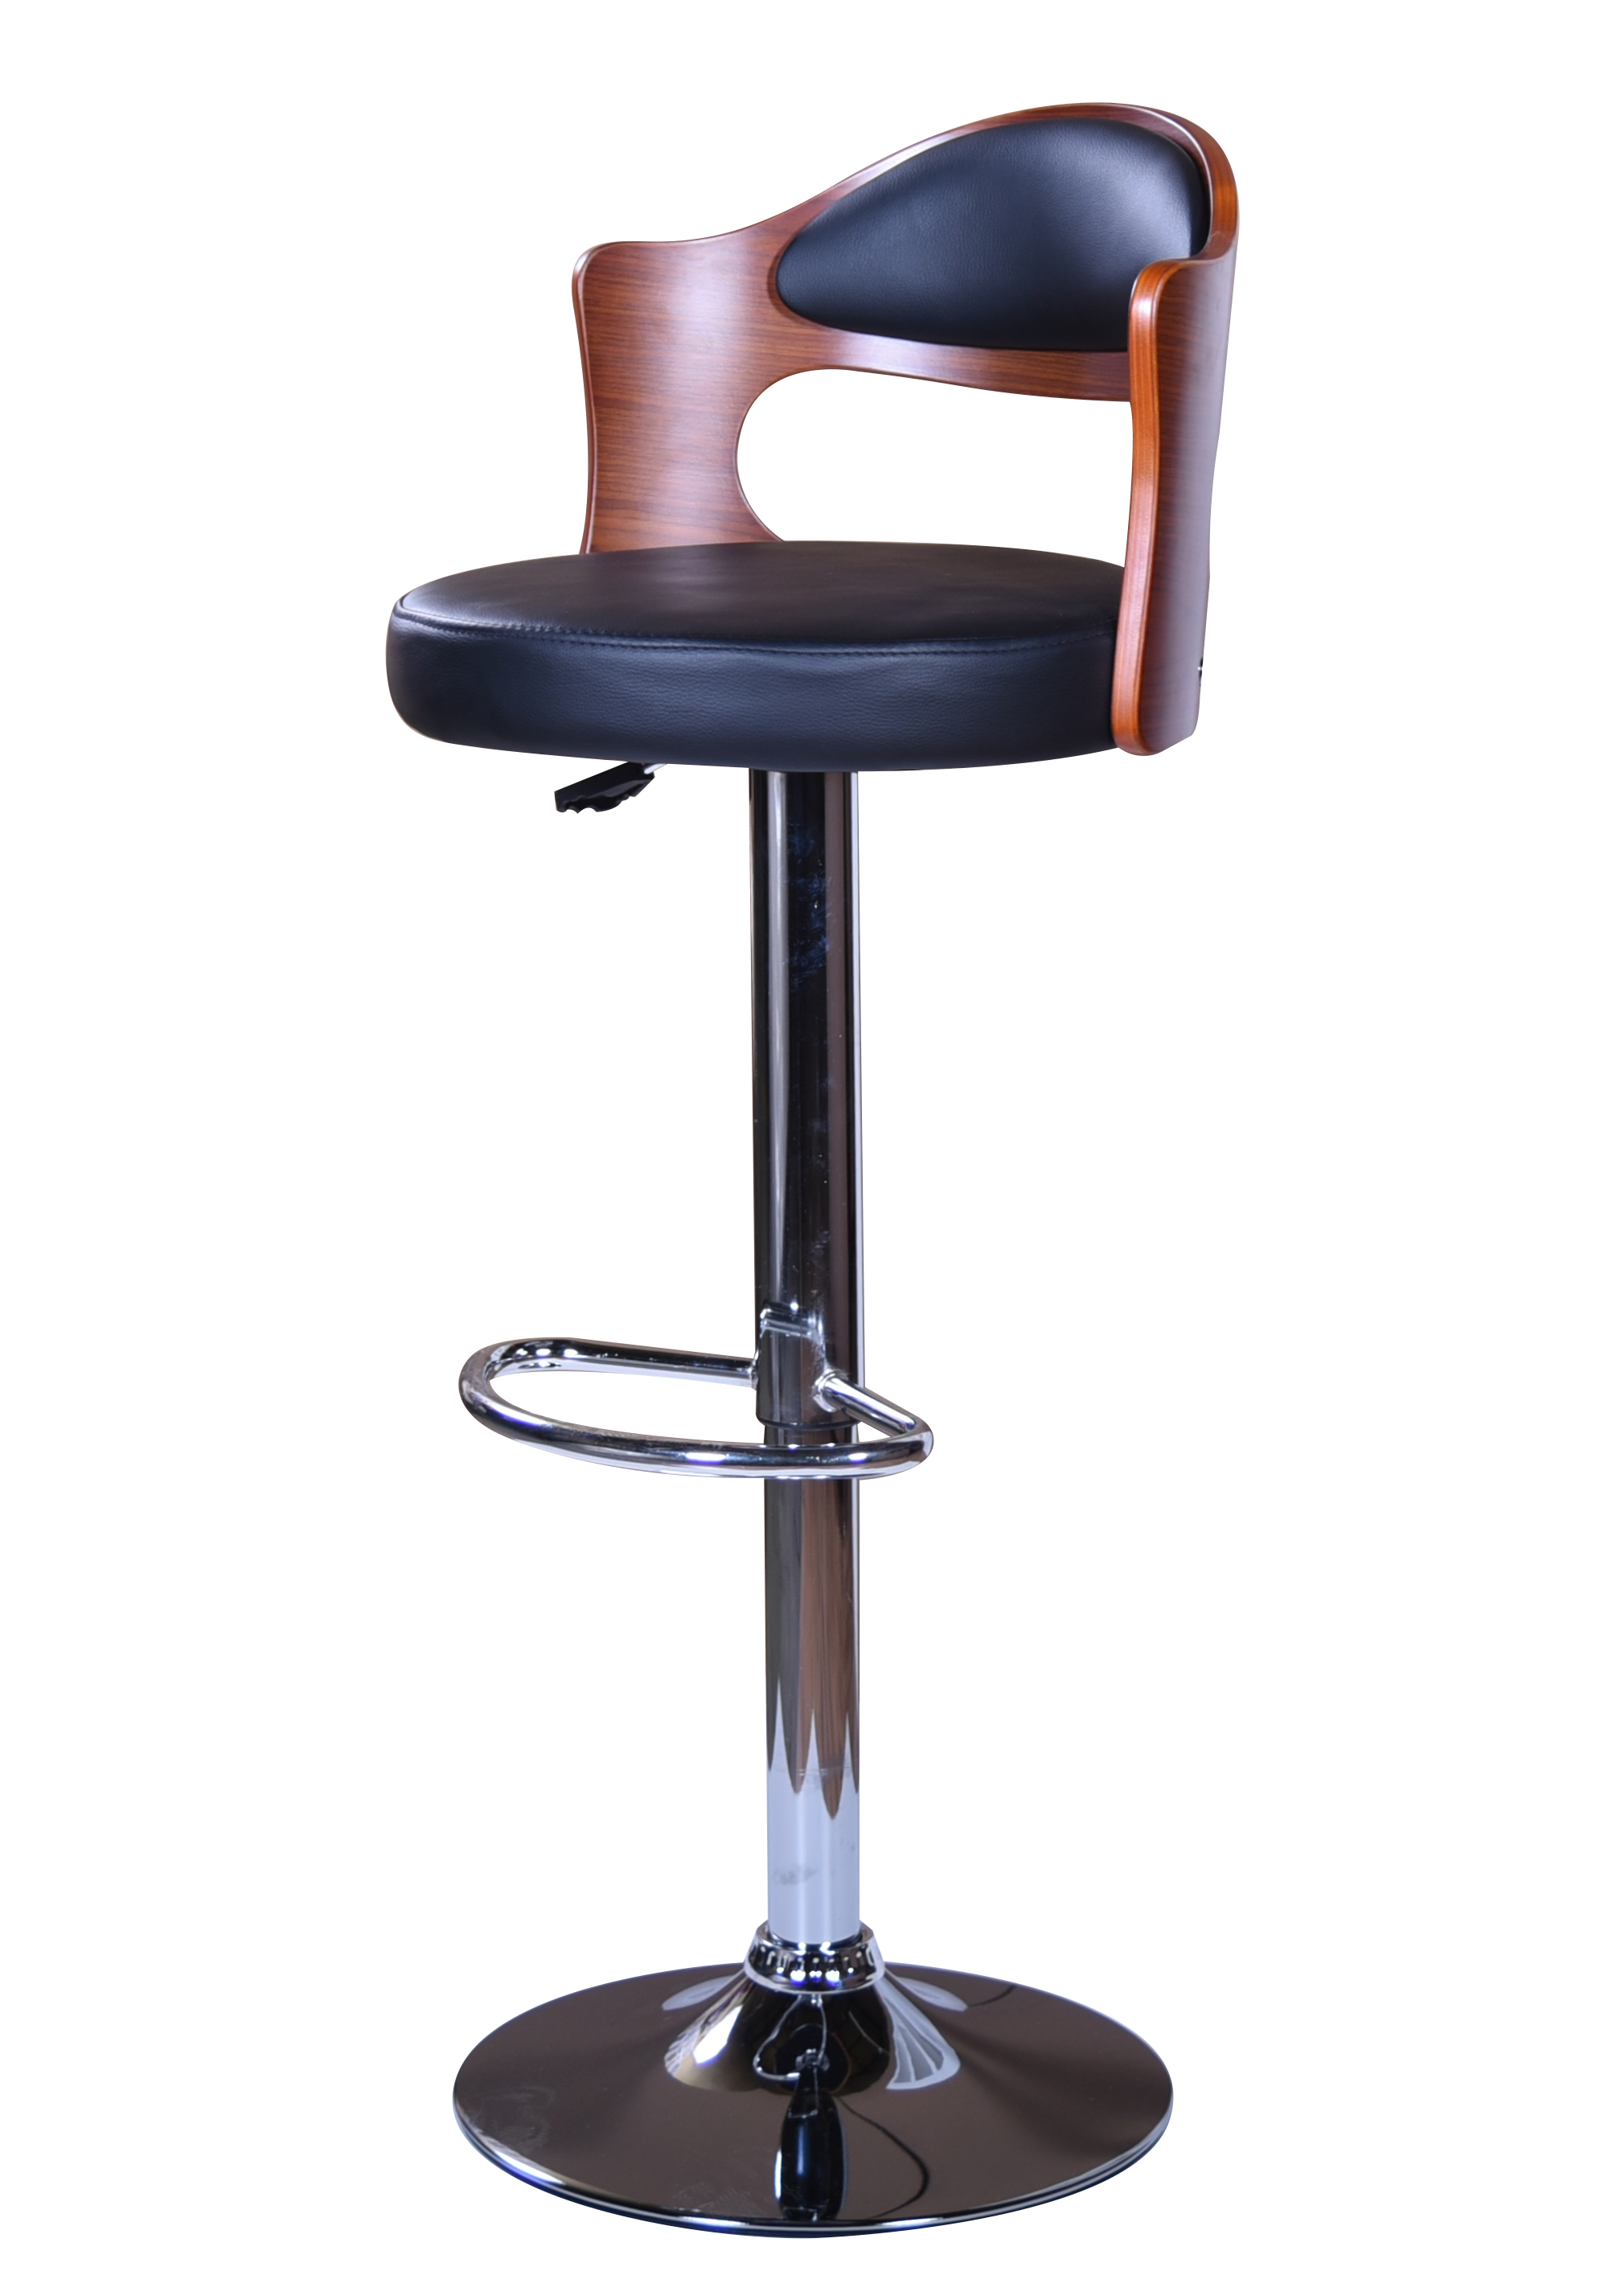 Bar Stools for sale Cheapest on Bar Stools